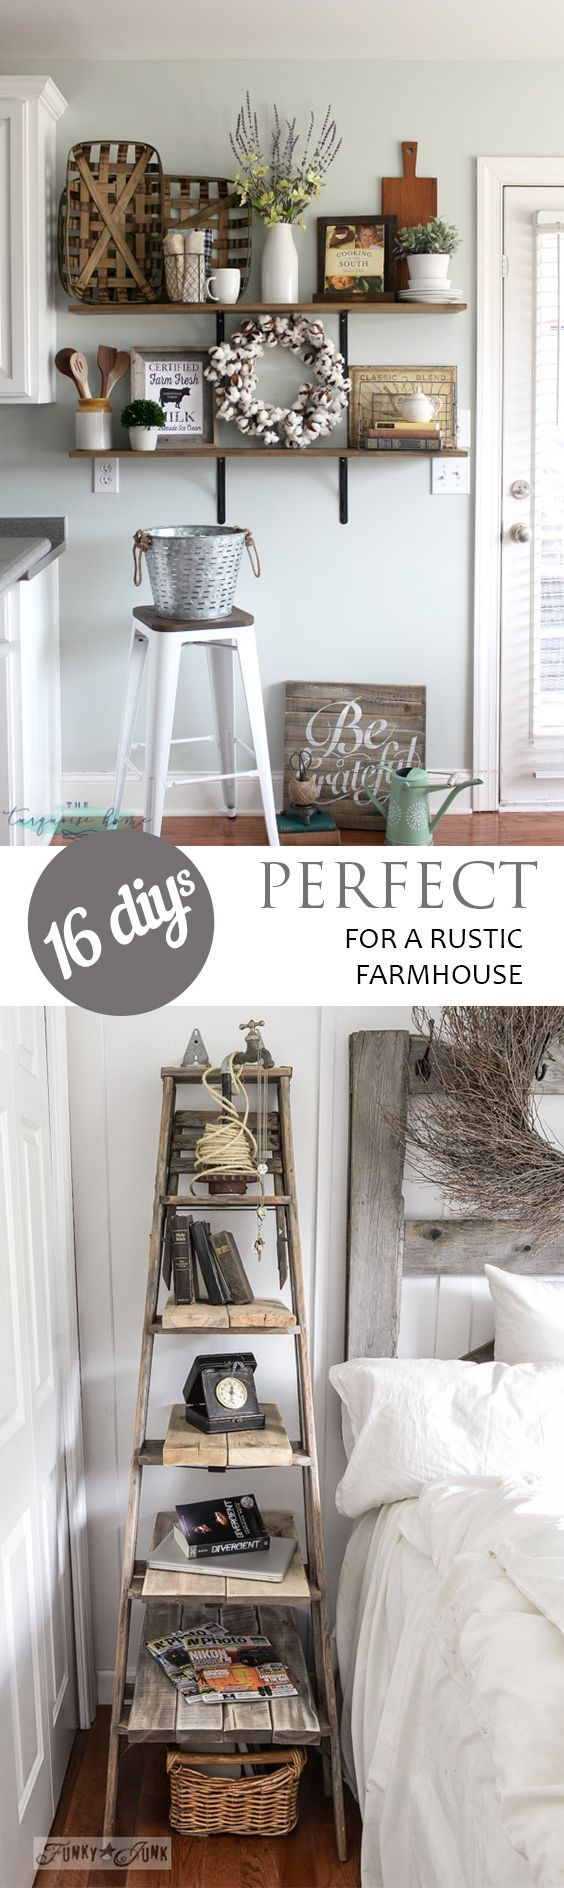 16 diys perfect for a rustic farmhouse find this pin and more on home decor